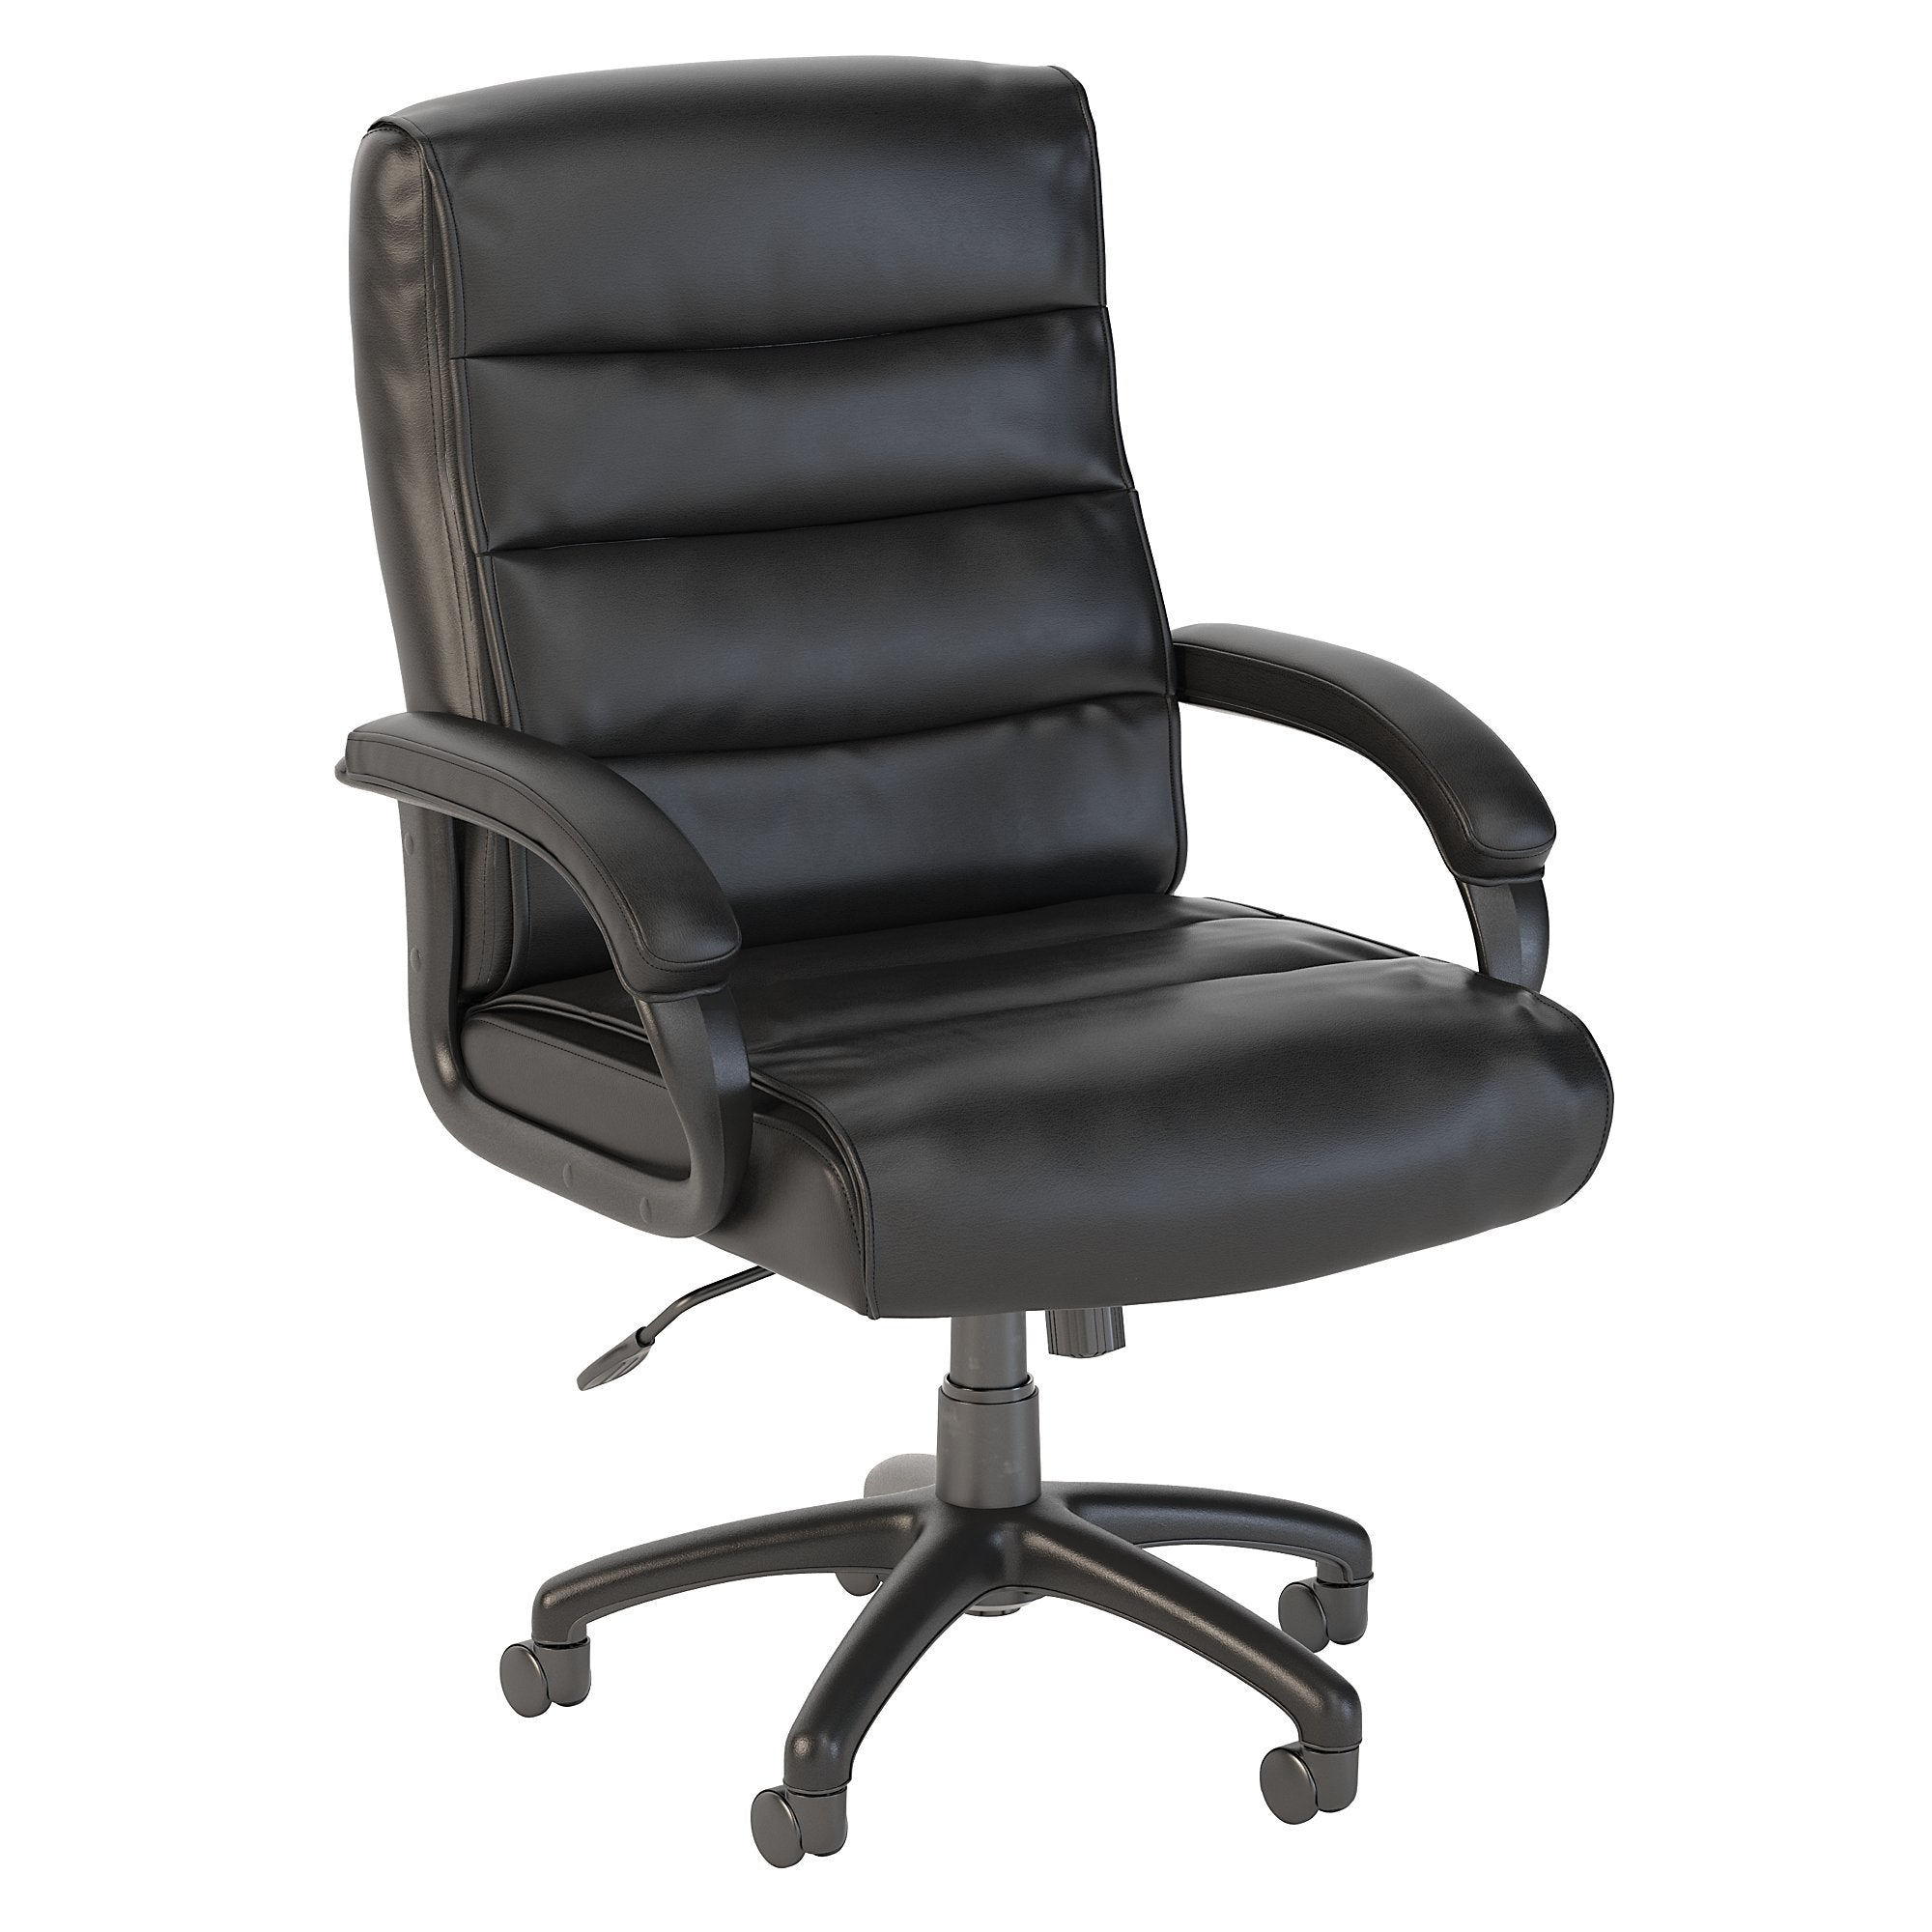 CH1505BLL-03 Bush Business Furniture Soft Sense Mid Back Black Leather Executive Office Chair